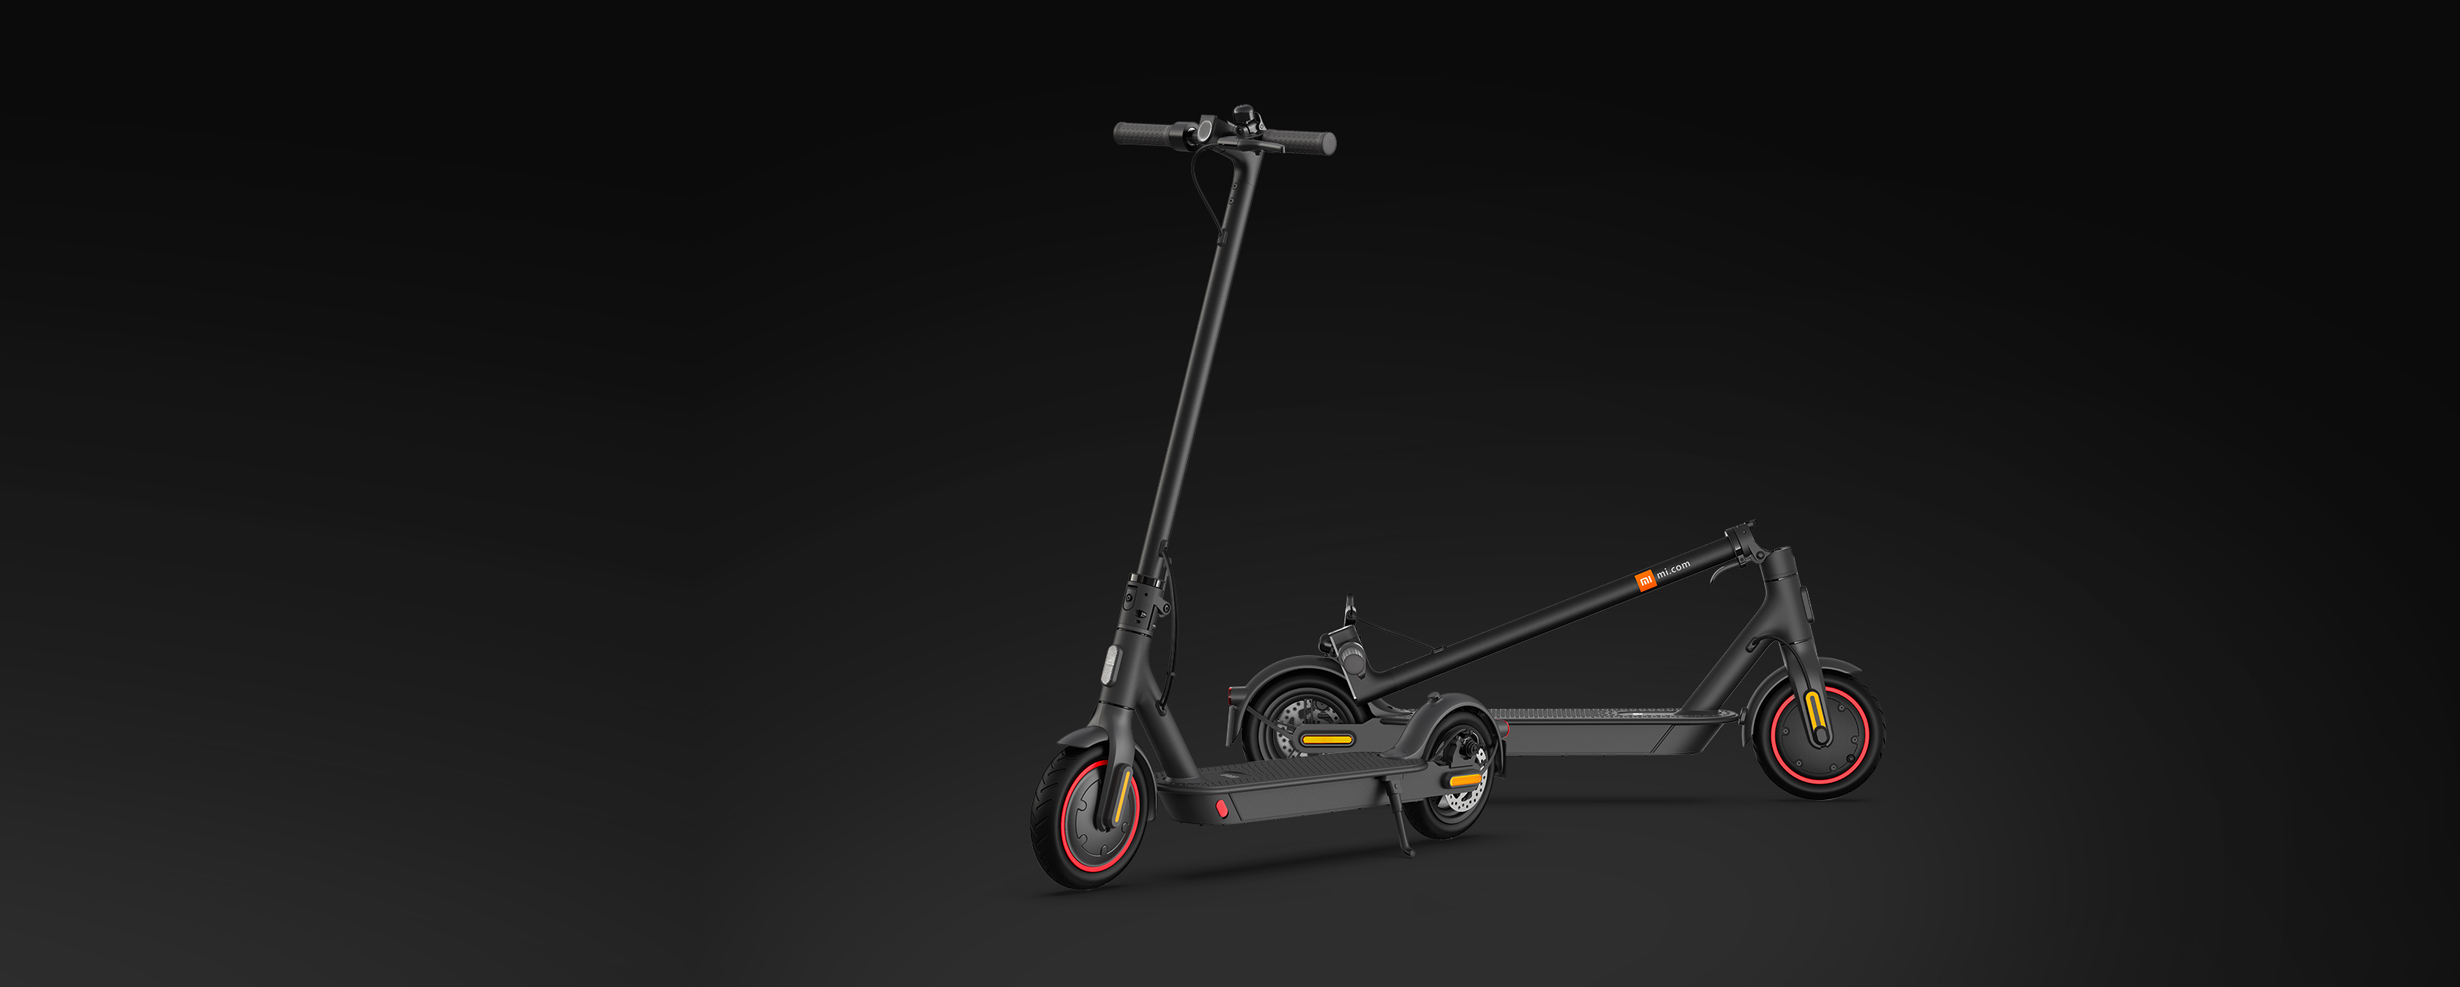 Scooter Pro 2